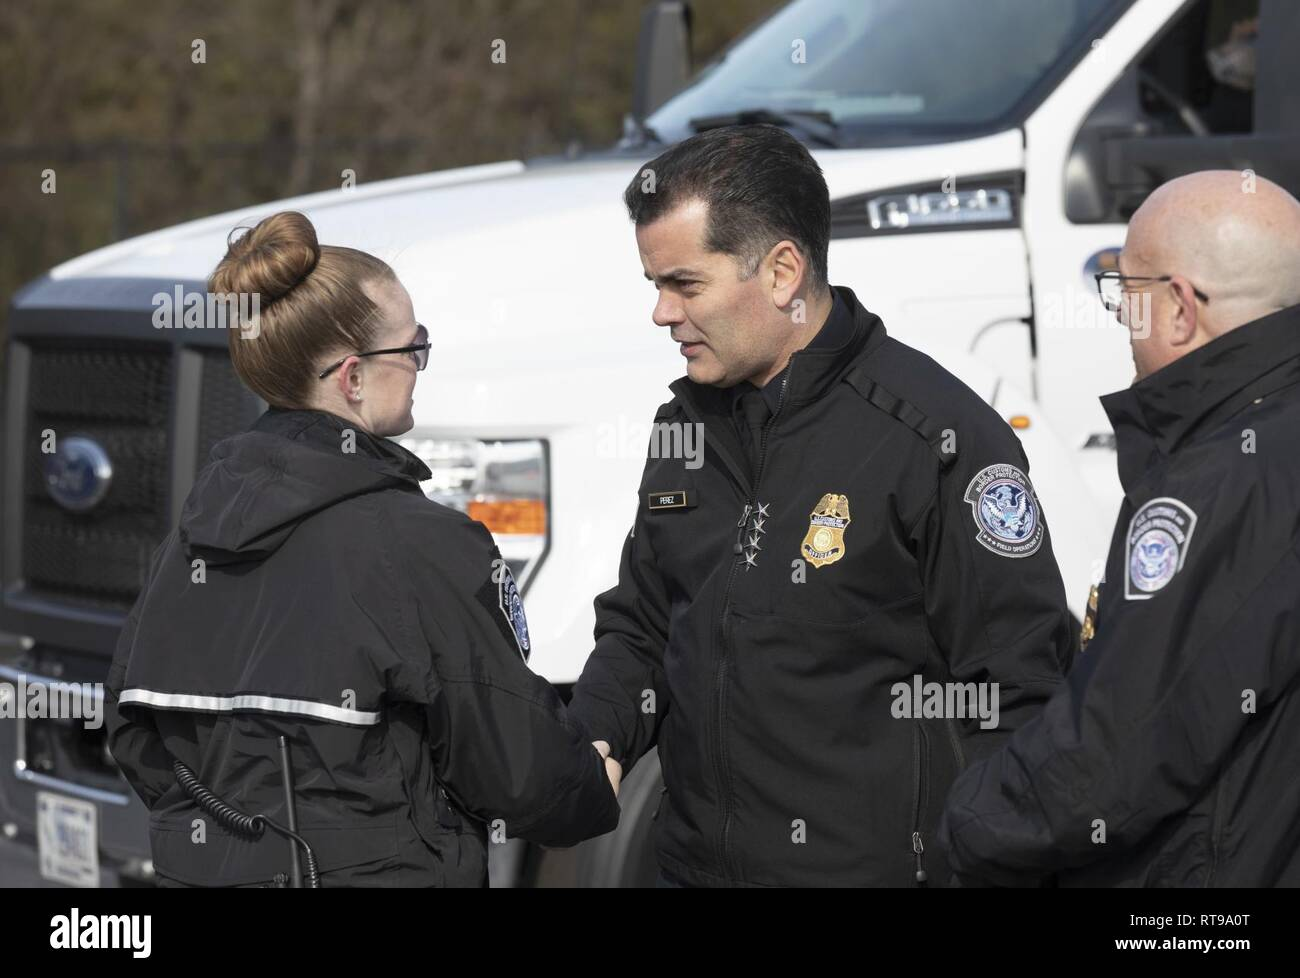 U.S. Customs and Border Protection Deputy Commissioner Robert E. Perez visits with CBP officers conducting Non-intrusive inspections in advance of Super Bowl LIII in Atlanta, Georgia, January 30, 2019. U.S. Customs and Border Protection - Stock Image